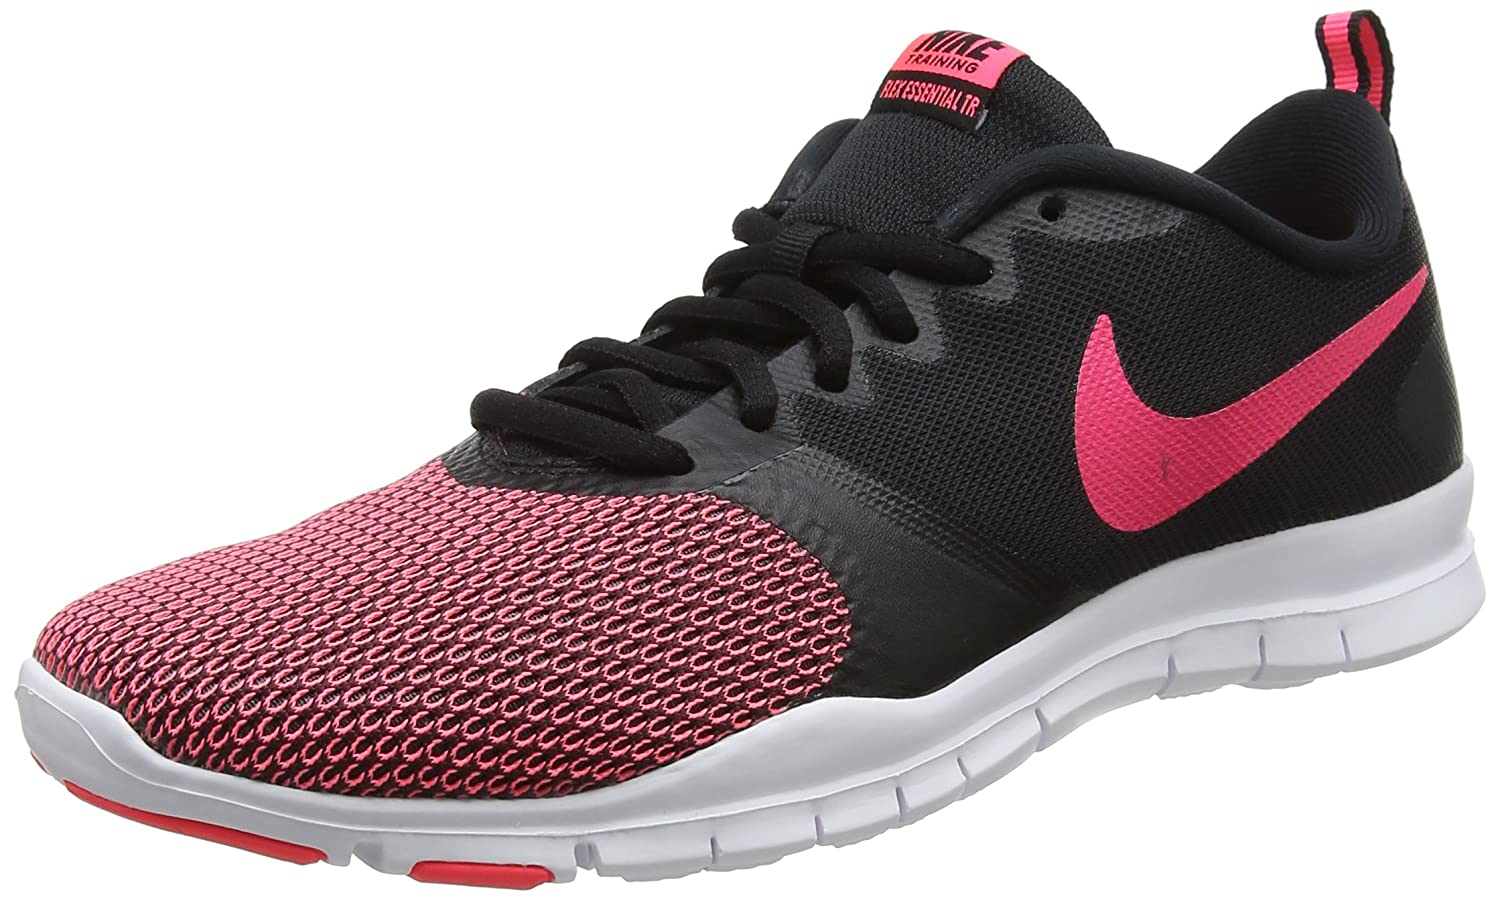 NIKE Women's Flex Essential Tr Training Shoe B0711YRKDB 6|Black/Racer Pink-anthracite